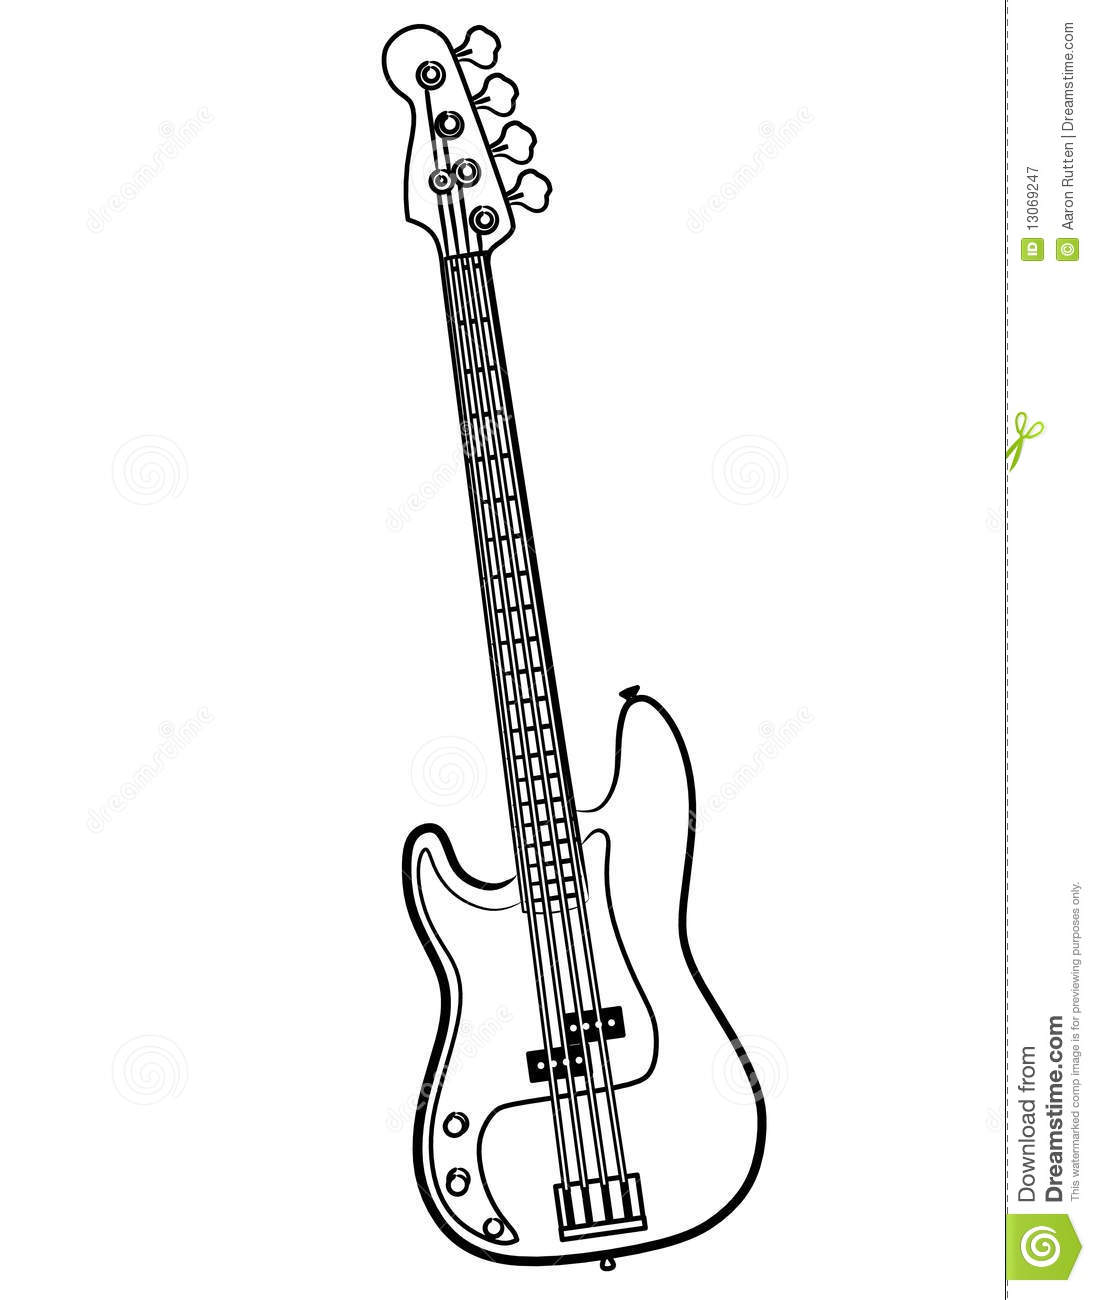 Electric Bass Guitar Line Art Vector Illustration Stock Vector